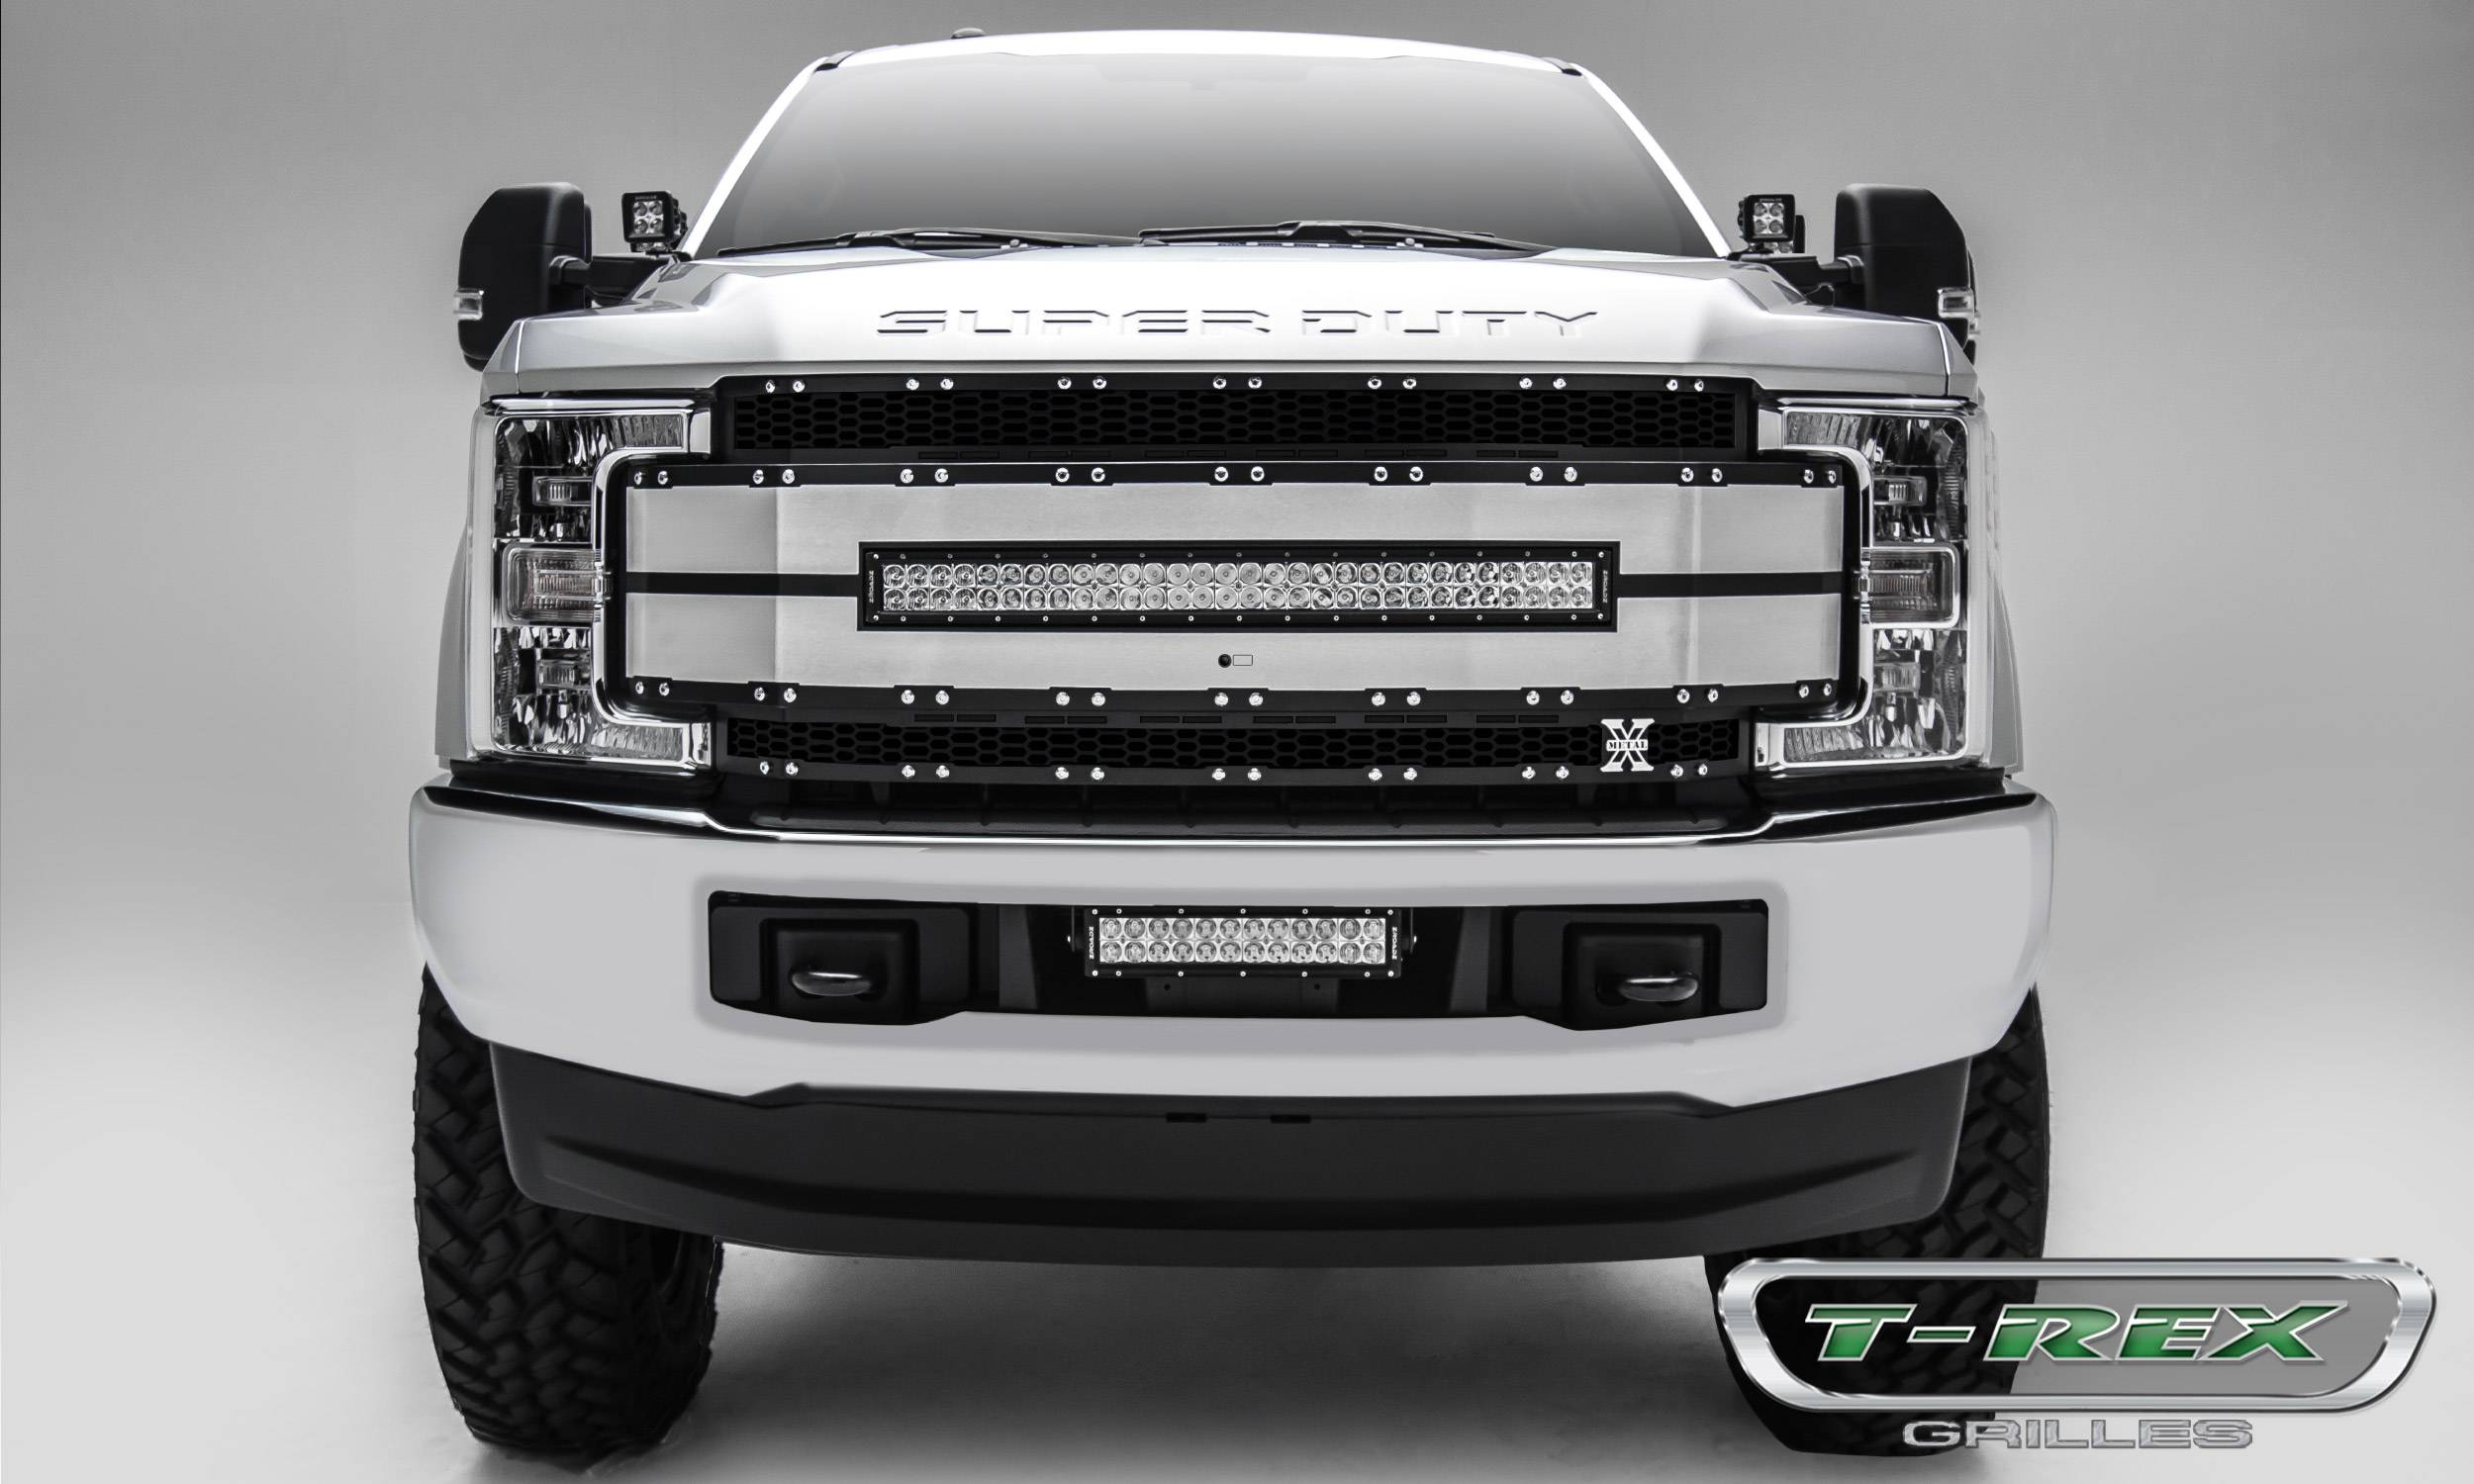 "T-REX Ford F-250 / F-350 Super Duty w/ Camera Provision - TORCH-AL Series - Main Replacement Grille - (1) 30"" LED Light Bar - Black w/ Black Mesh & Brushed Aluminum & Trim - Pt # 6315493"